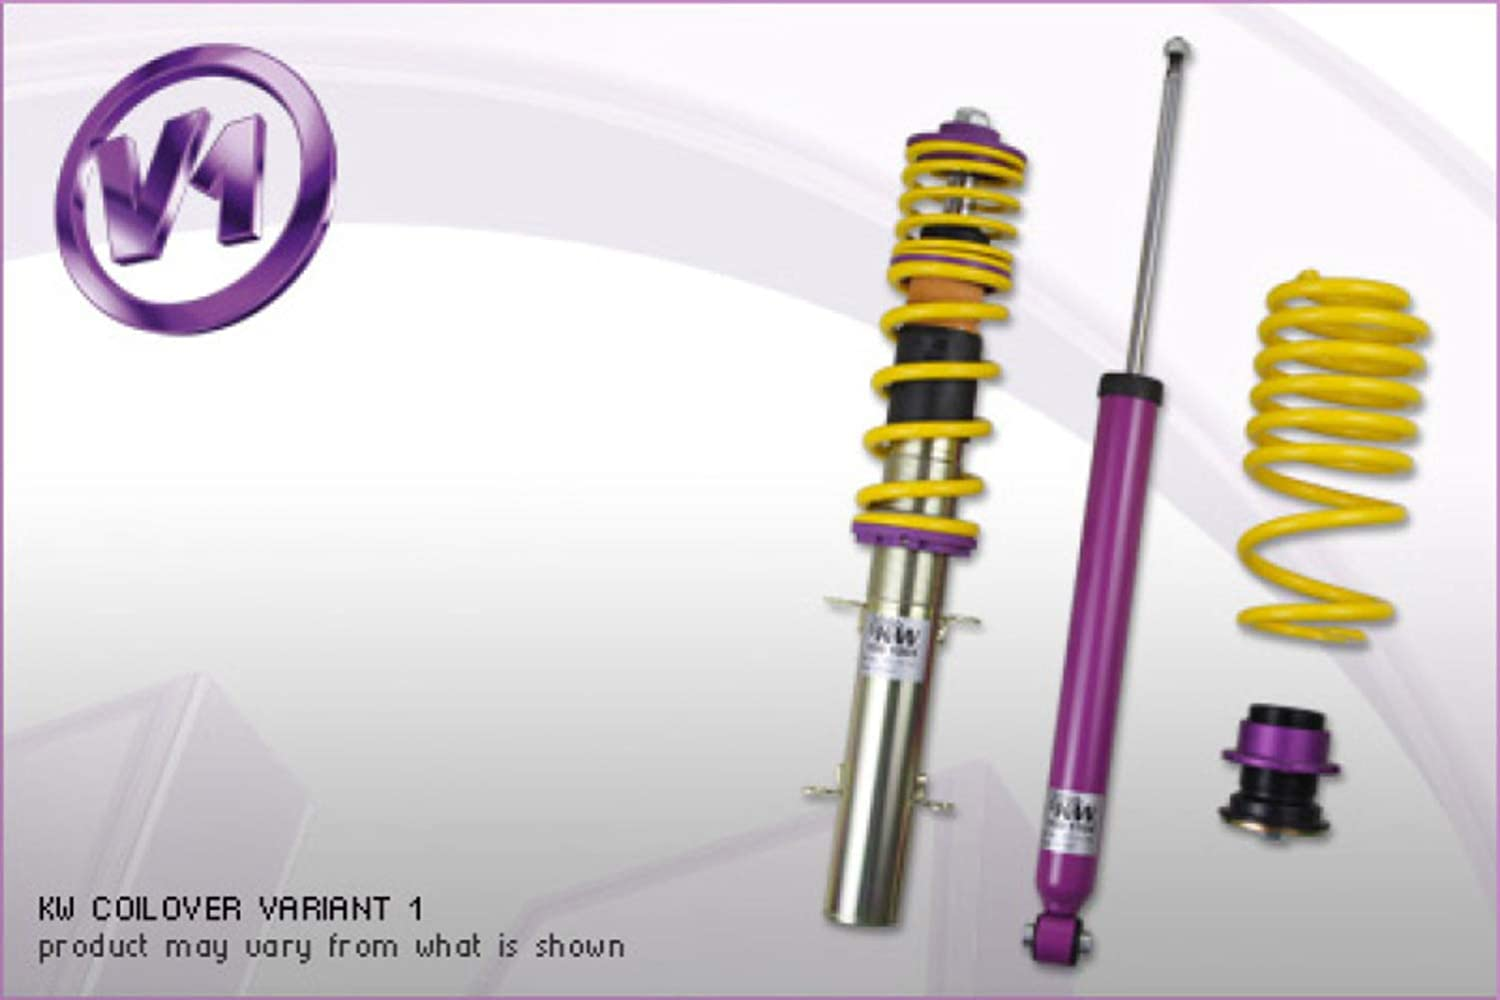 KW 10280056 Variant 1 Coilover